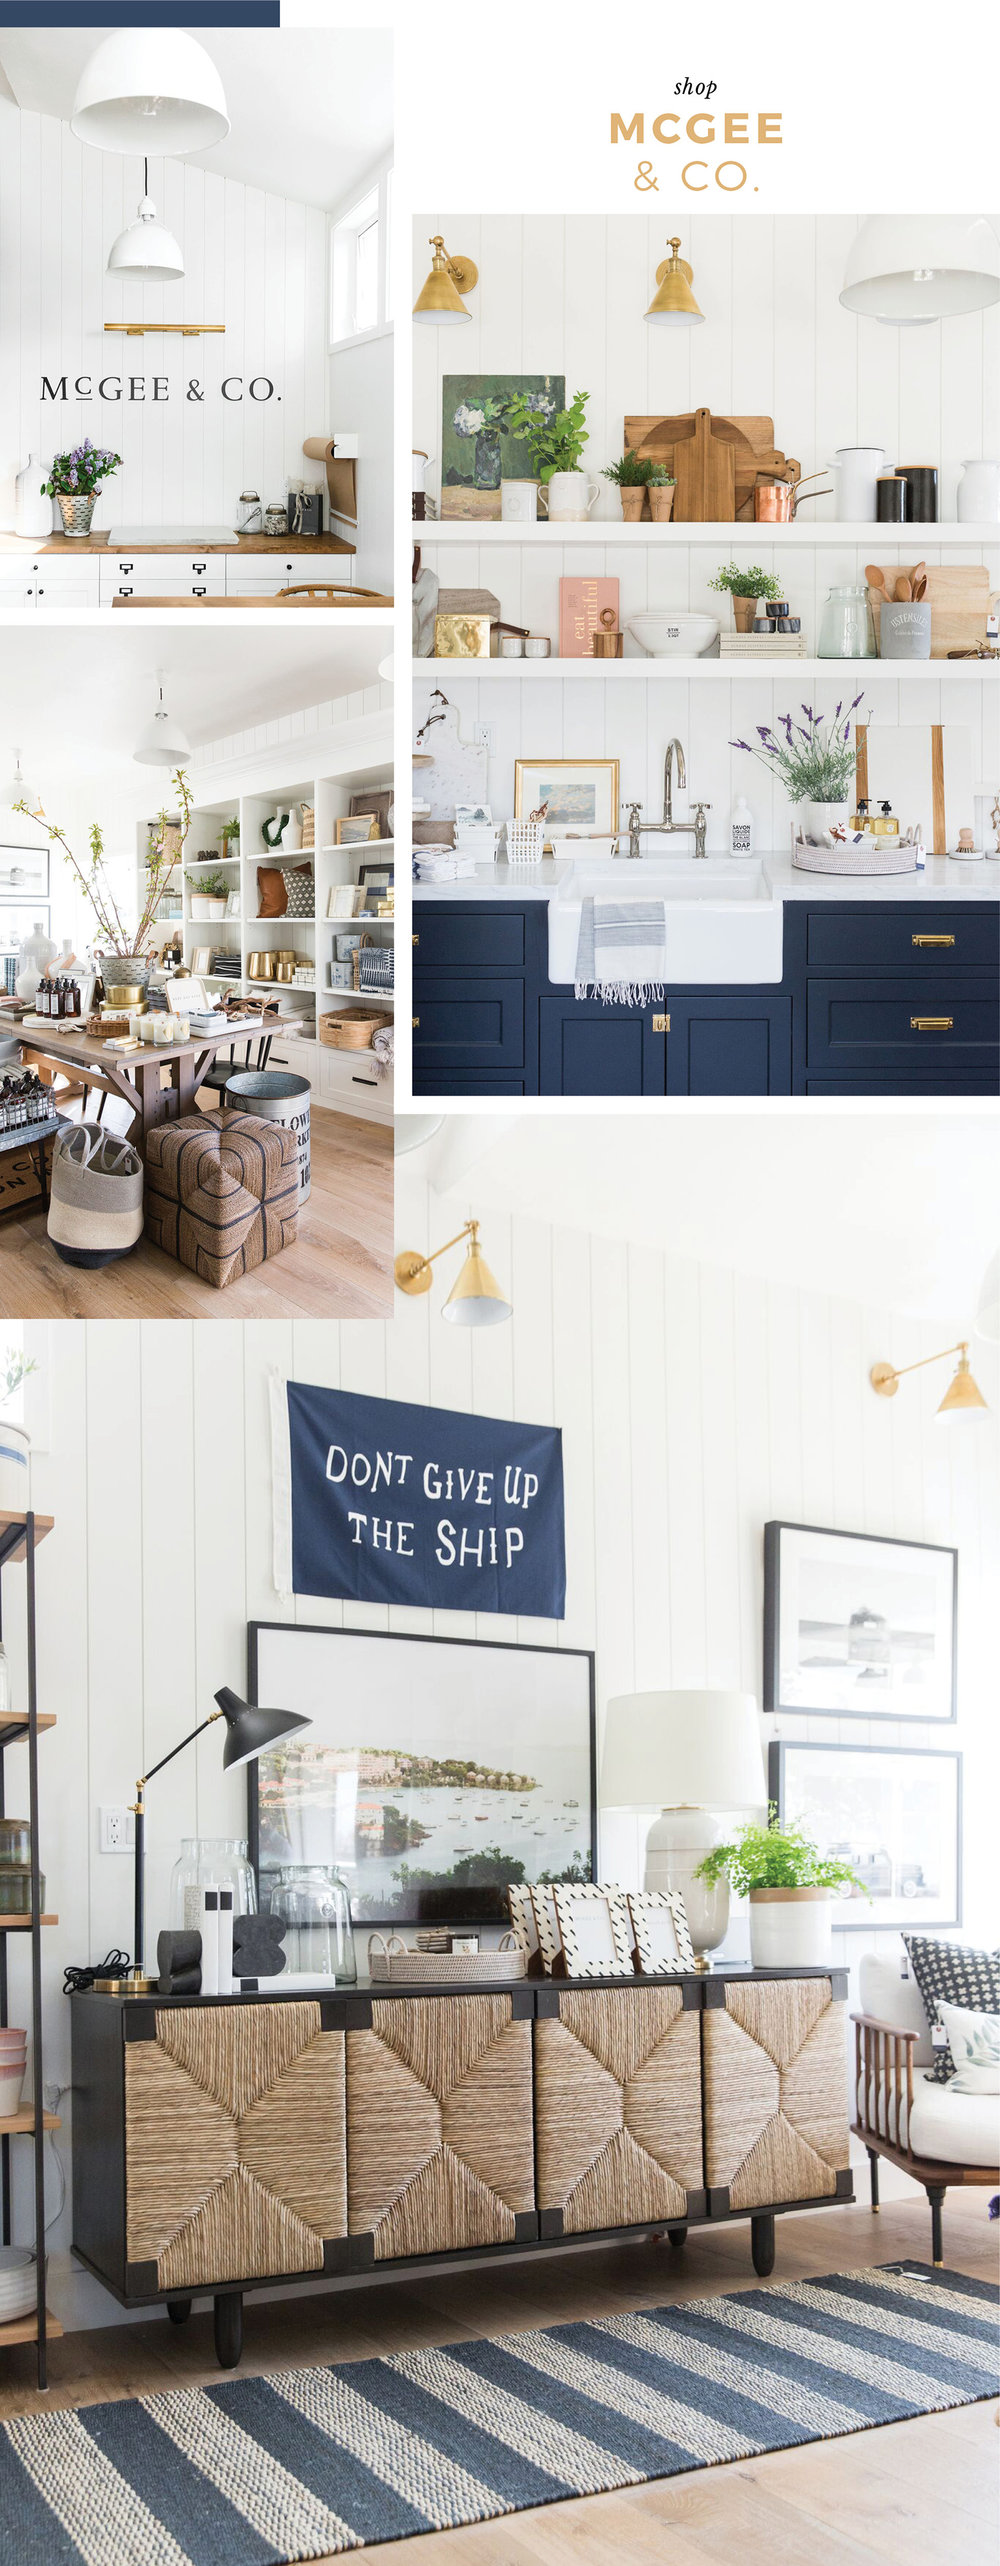 adore_home_blog_THE_OC_COSTA_MESA_MCGEEANDCO.jpg